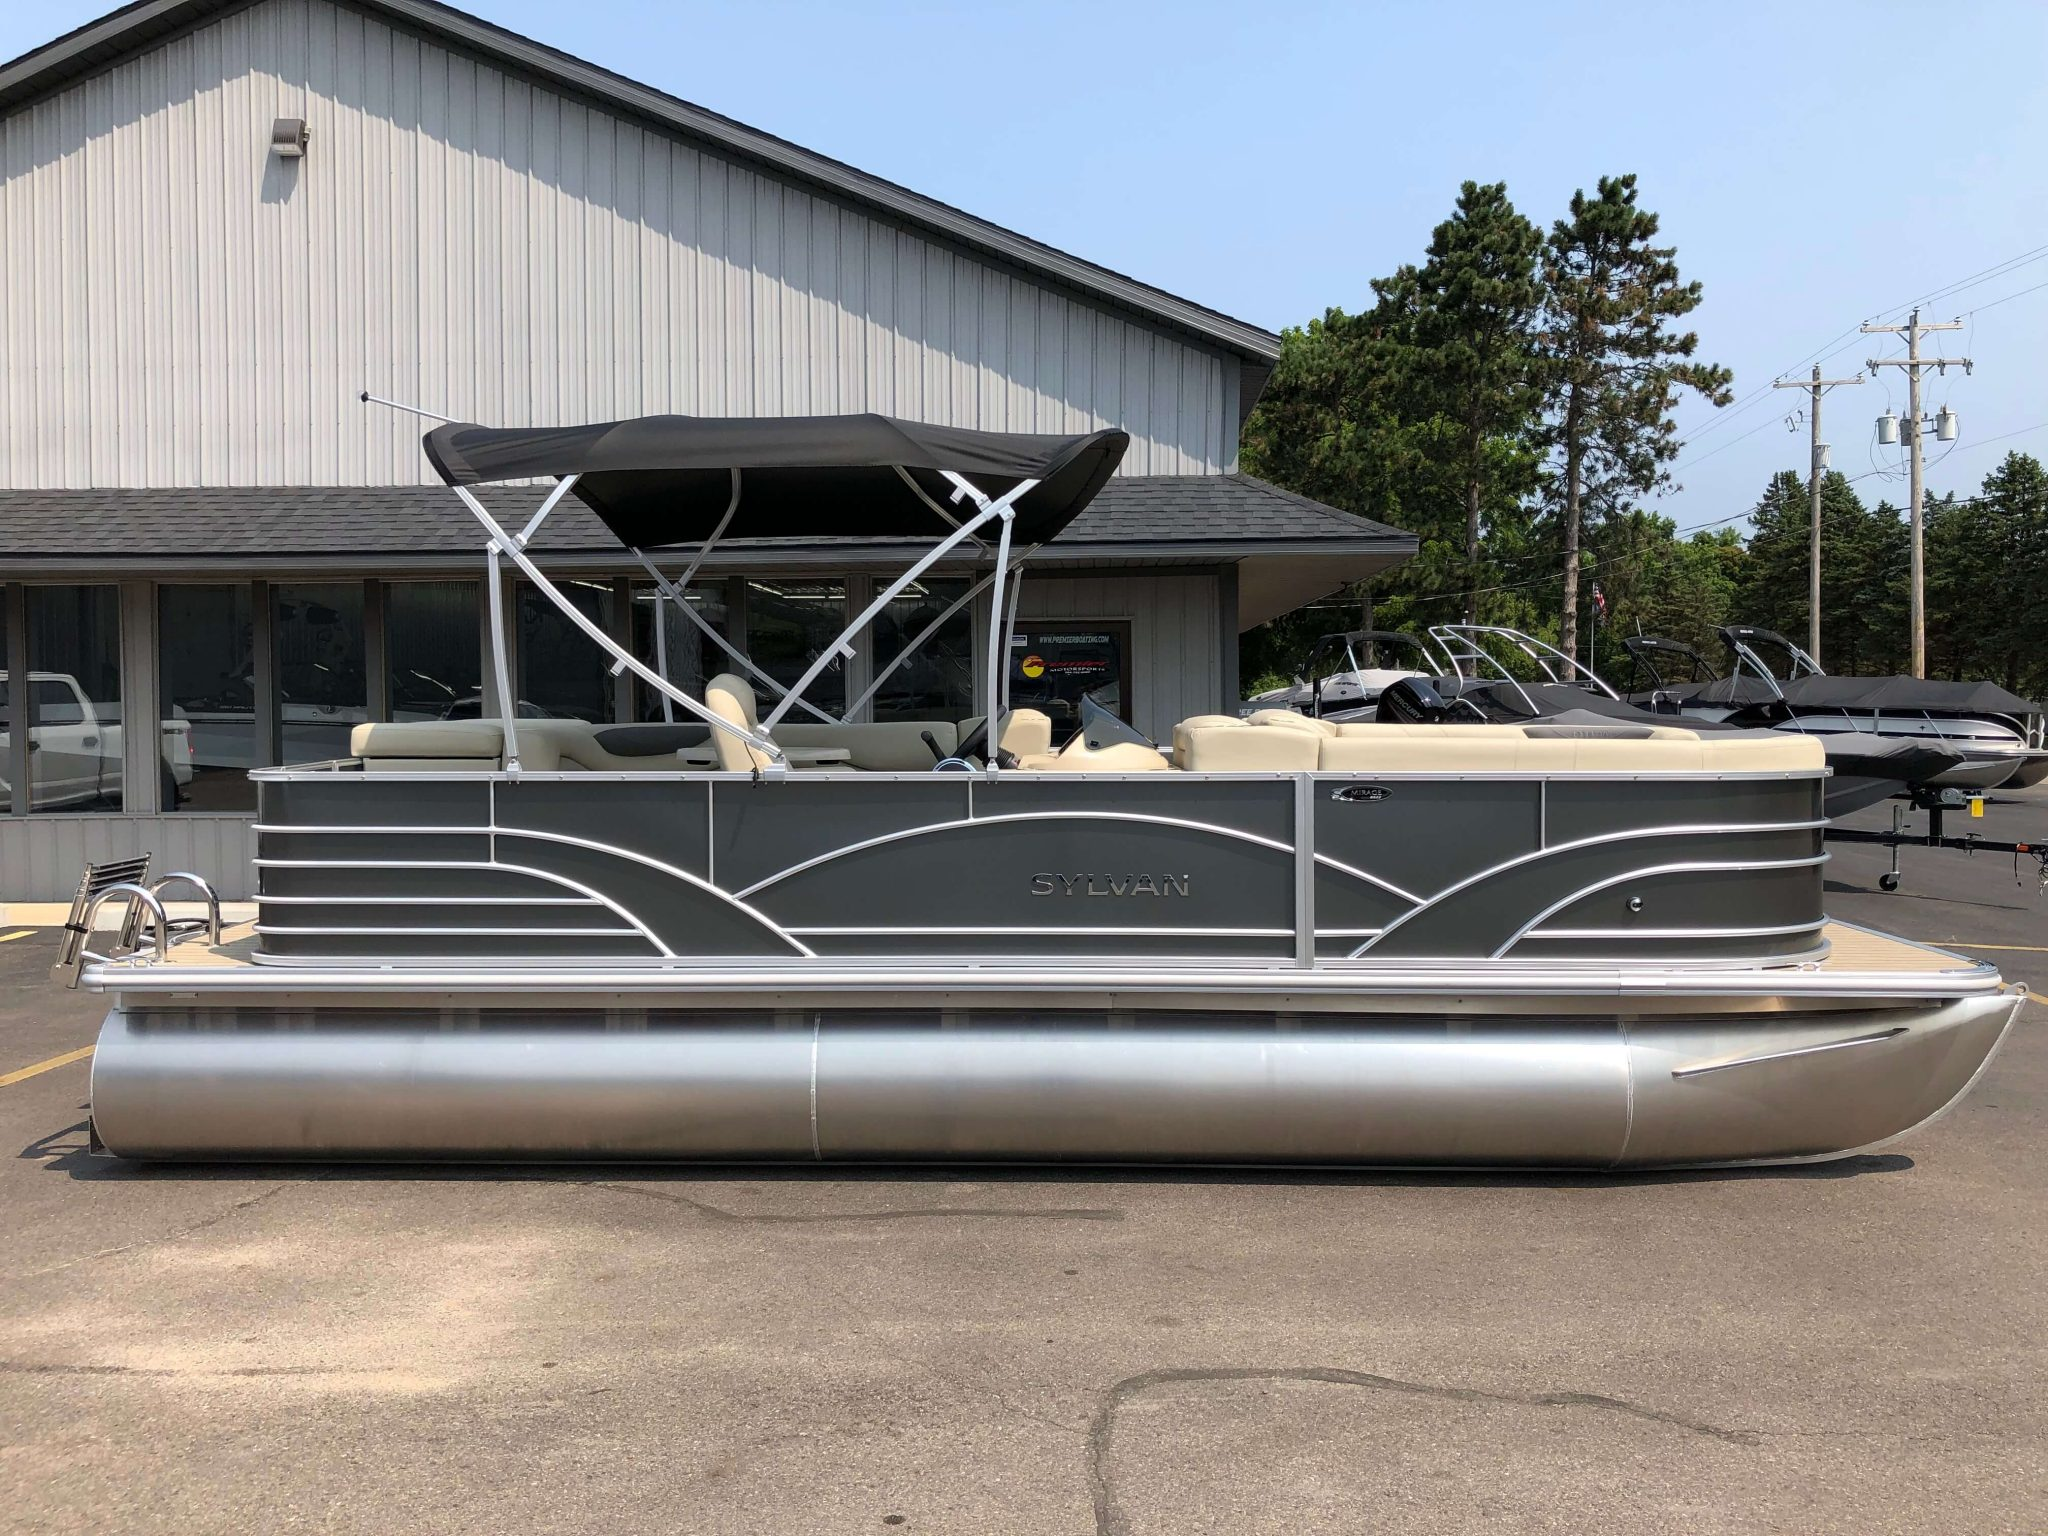 2019 Sylvan 8522 Cruise Carbon Pontoon Boat 7